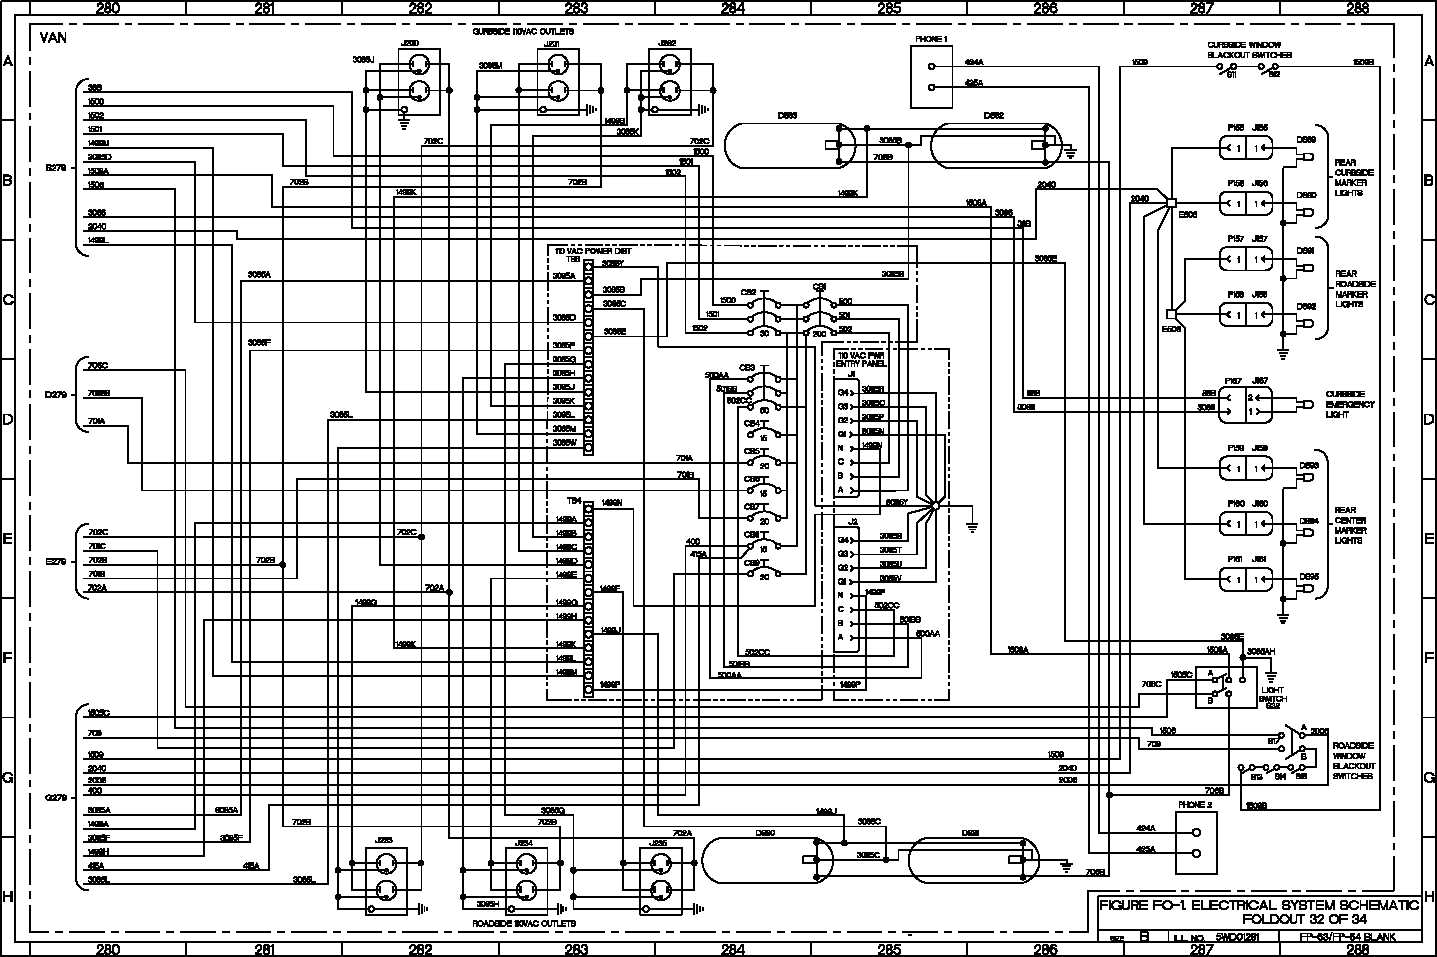 Electrical System Schematic